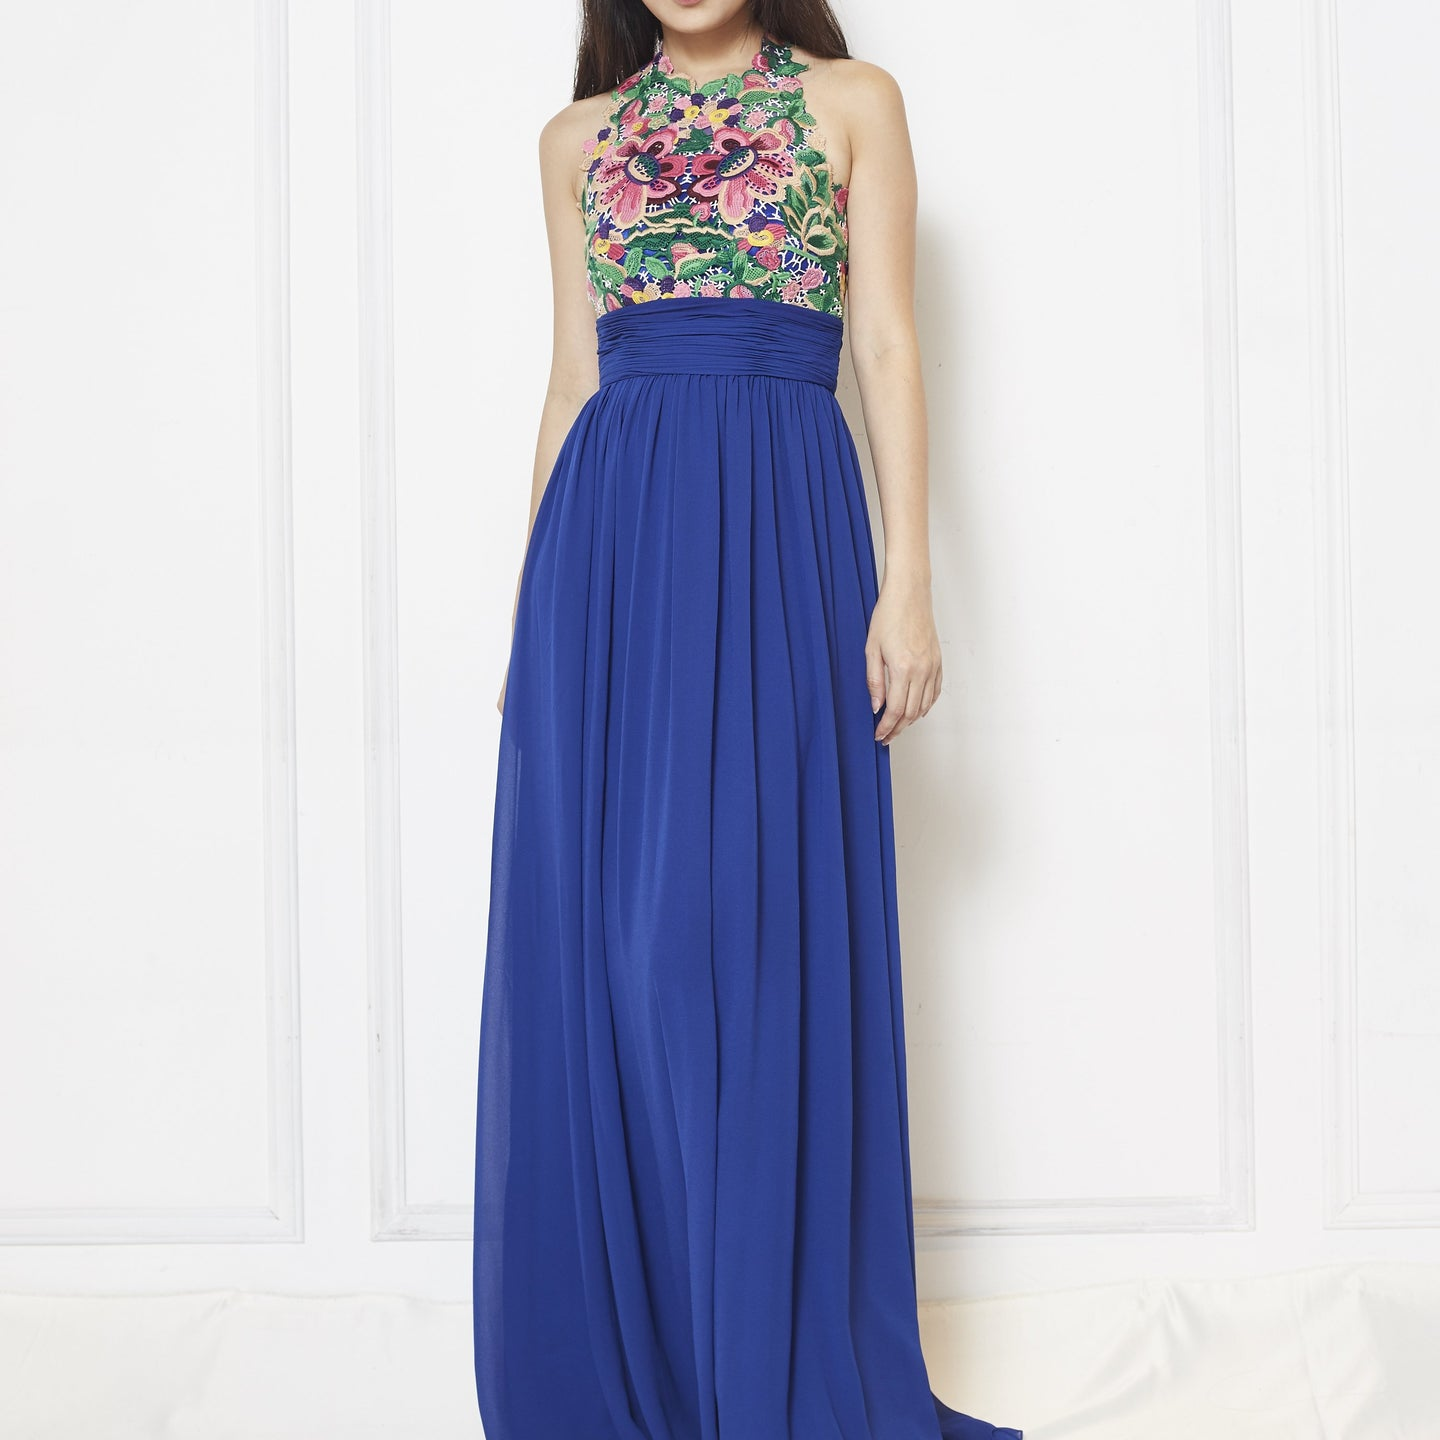 Charren Mosaic Lace Top Chiffon Maxi Dress